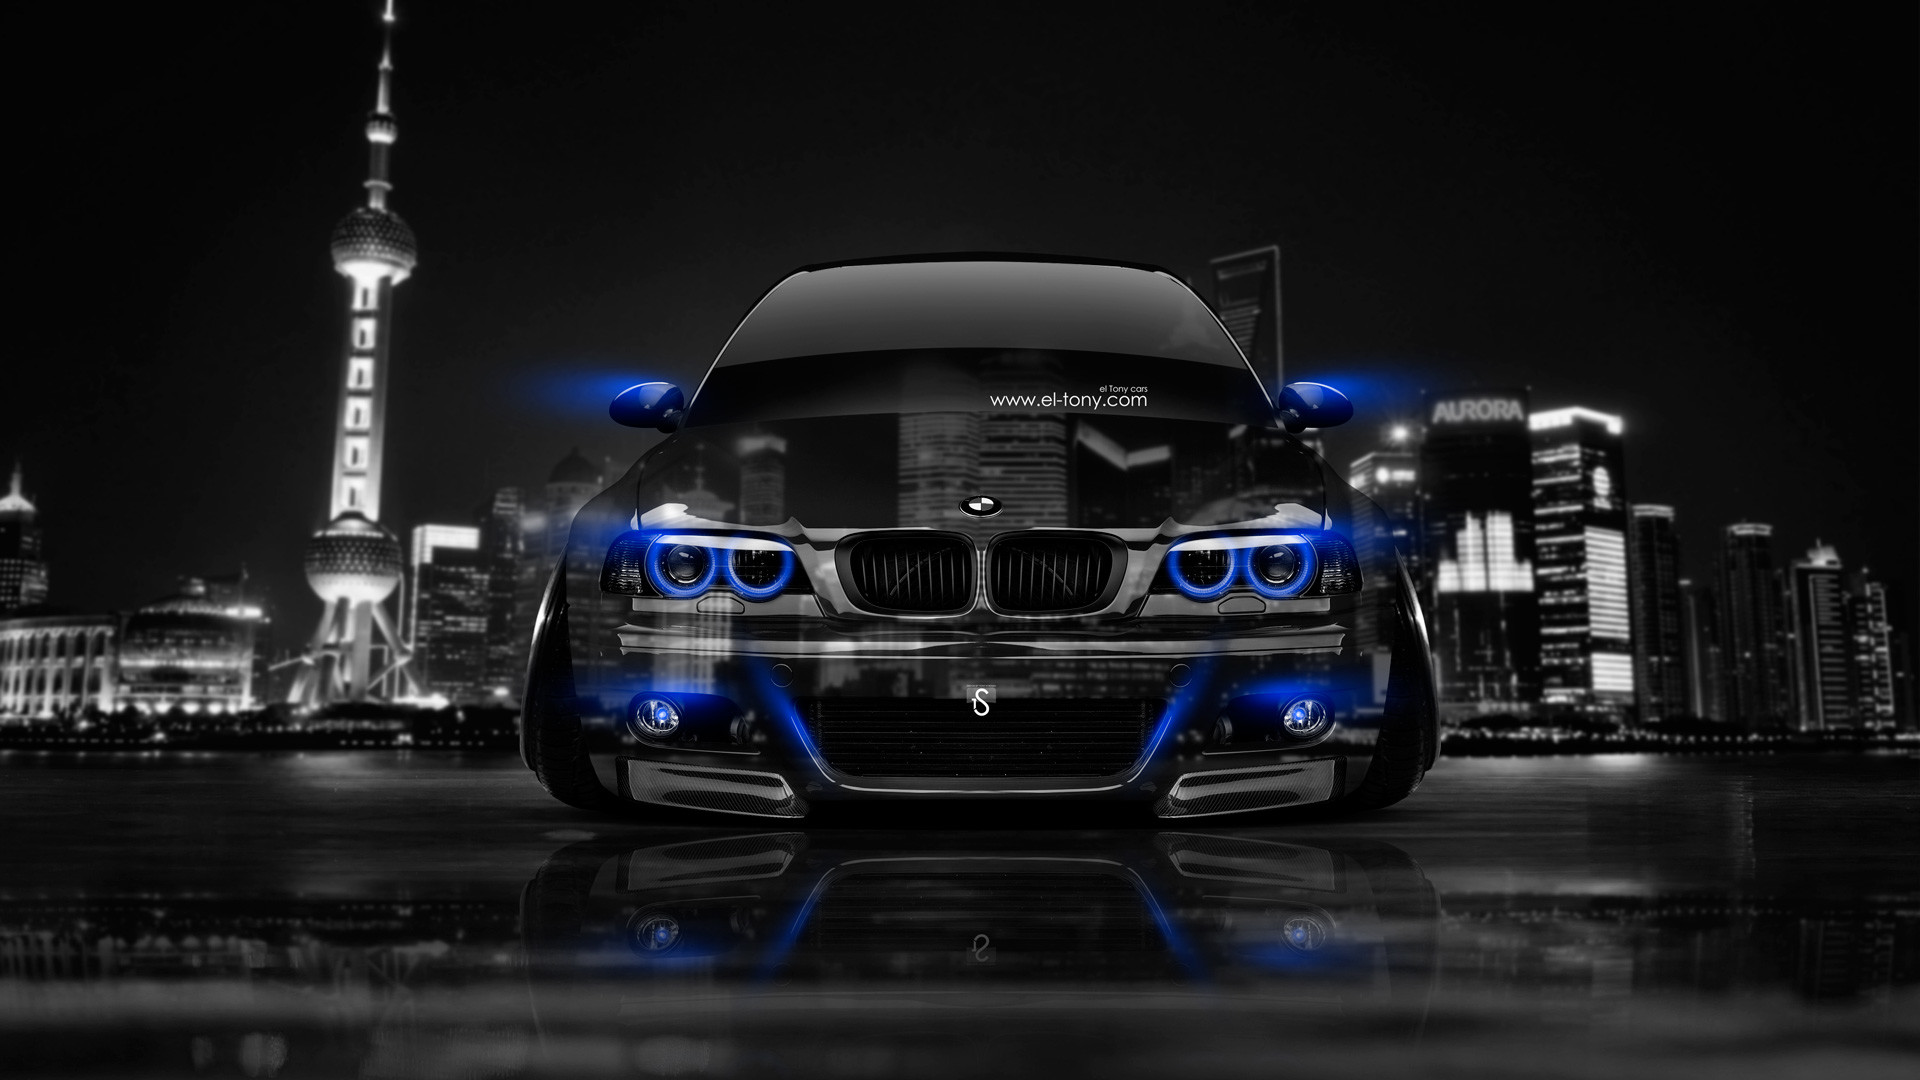 1920x1080 BMW-M3-E46-Front-Crystal-City-Car-2014-